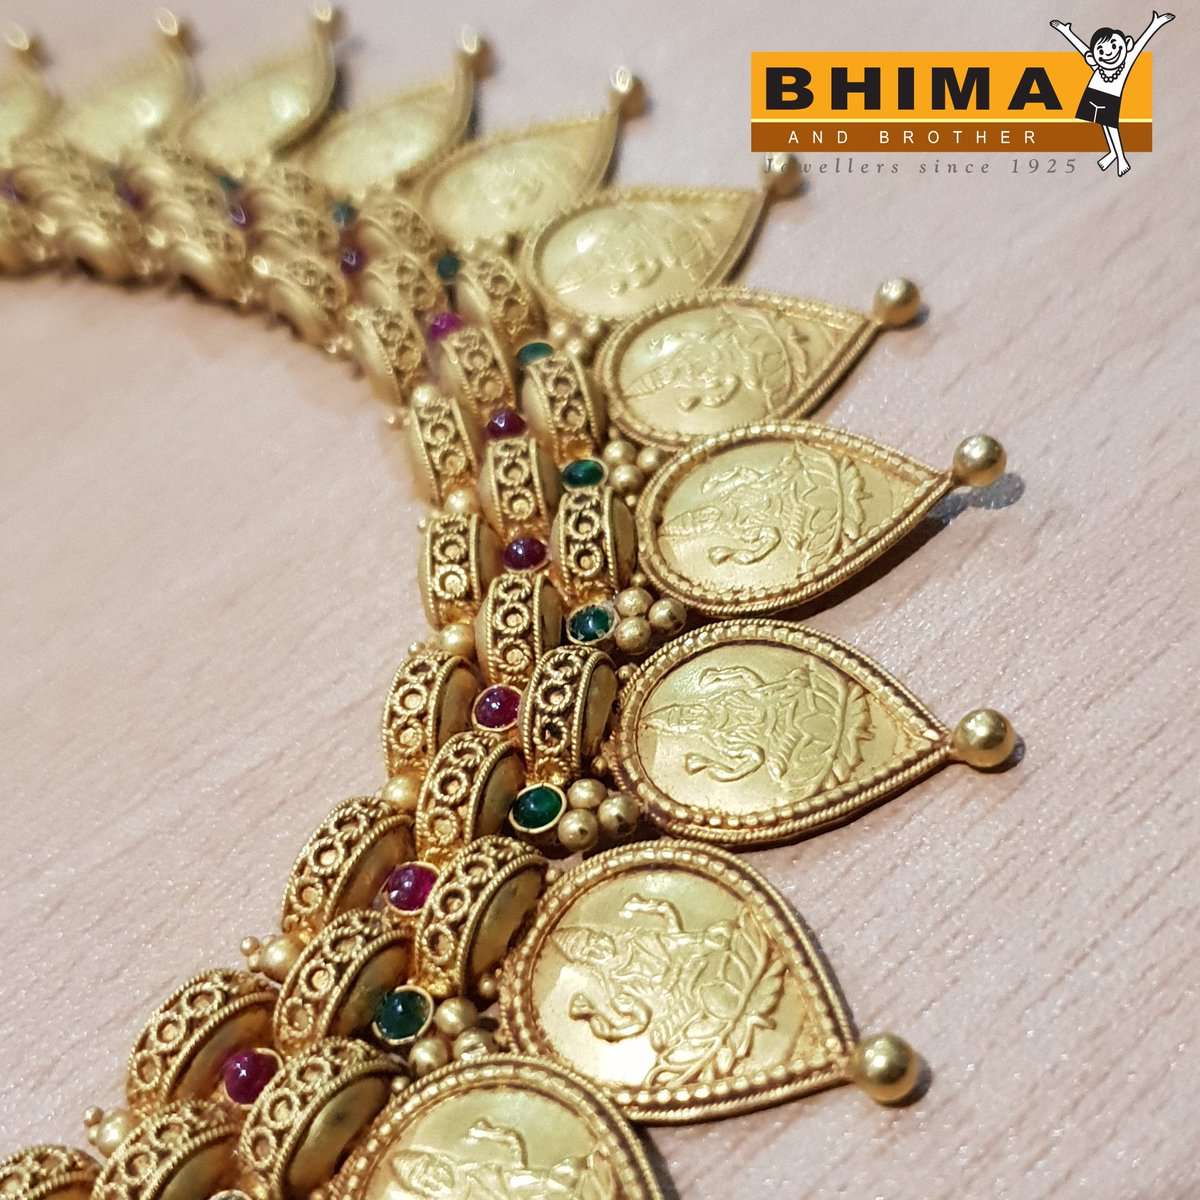 Bhima Jewellery On Twitter This